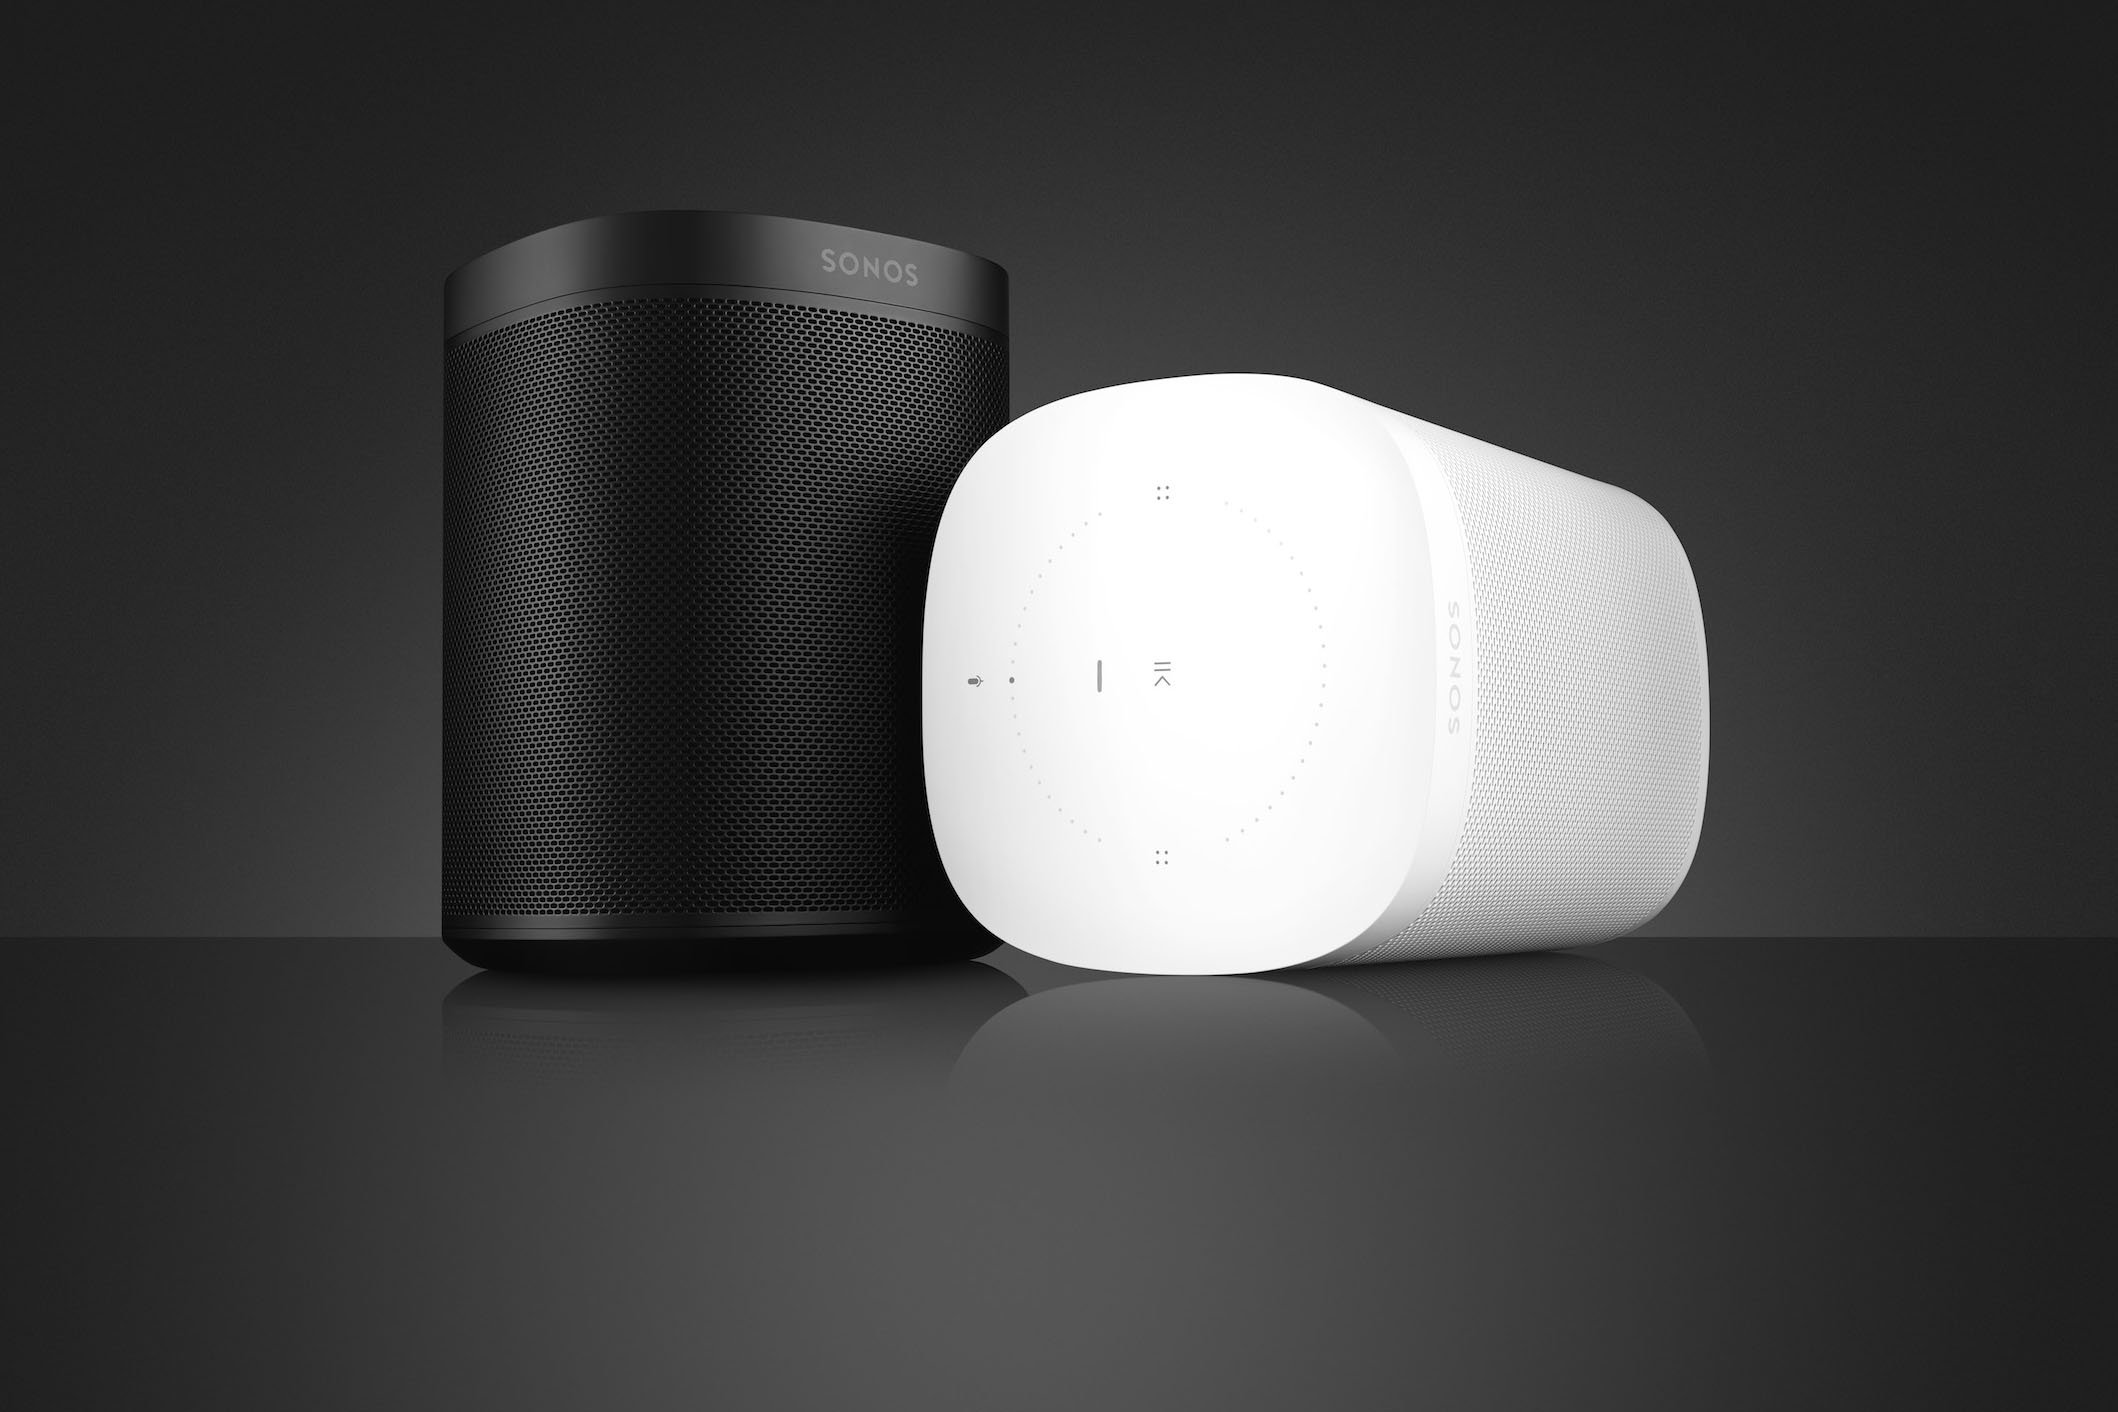 New Sonos One Smart Speaker with Alexa and Google Assistant